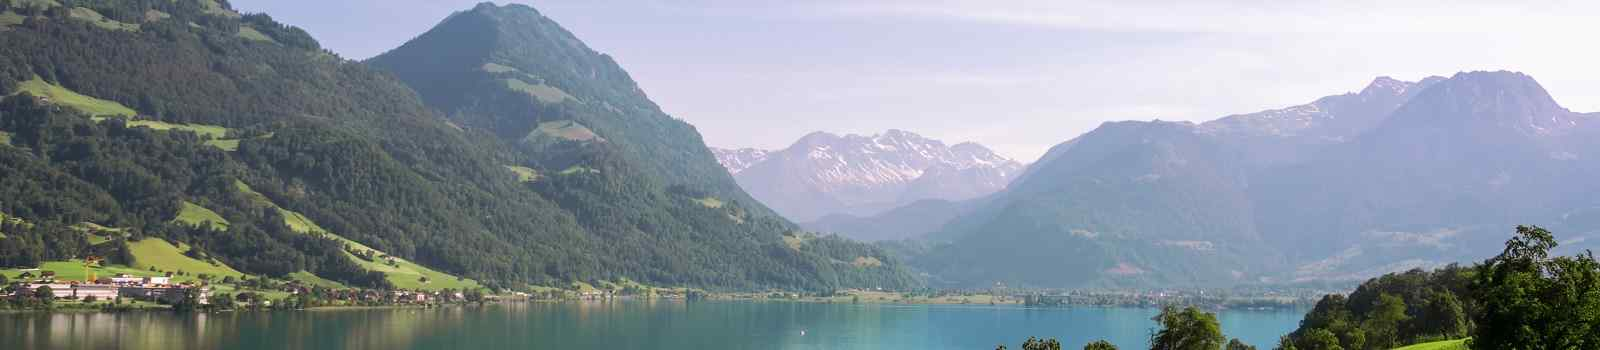 CH-WAN-JURA   Scenic landscape in in central Switzerland  Lake Sarnersee